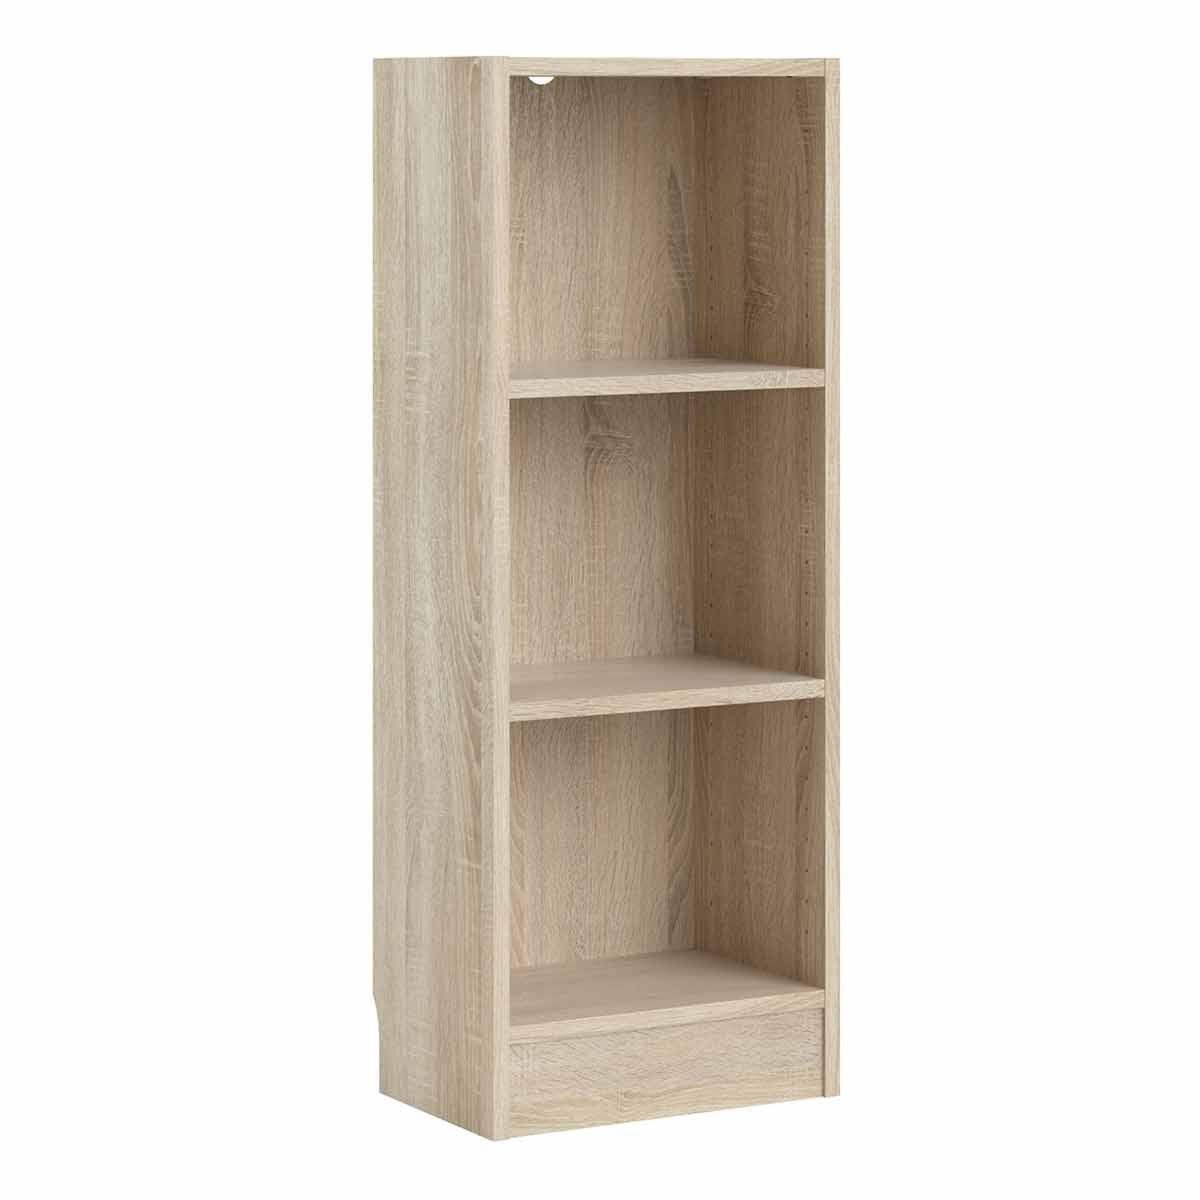 Basic Low Narrow Bookcase with 2 Shelves